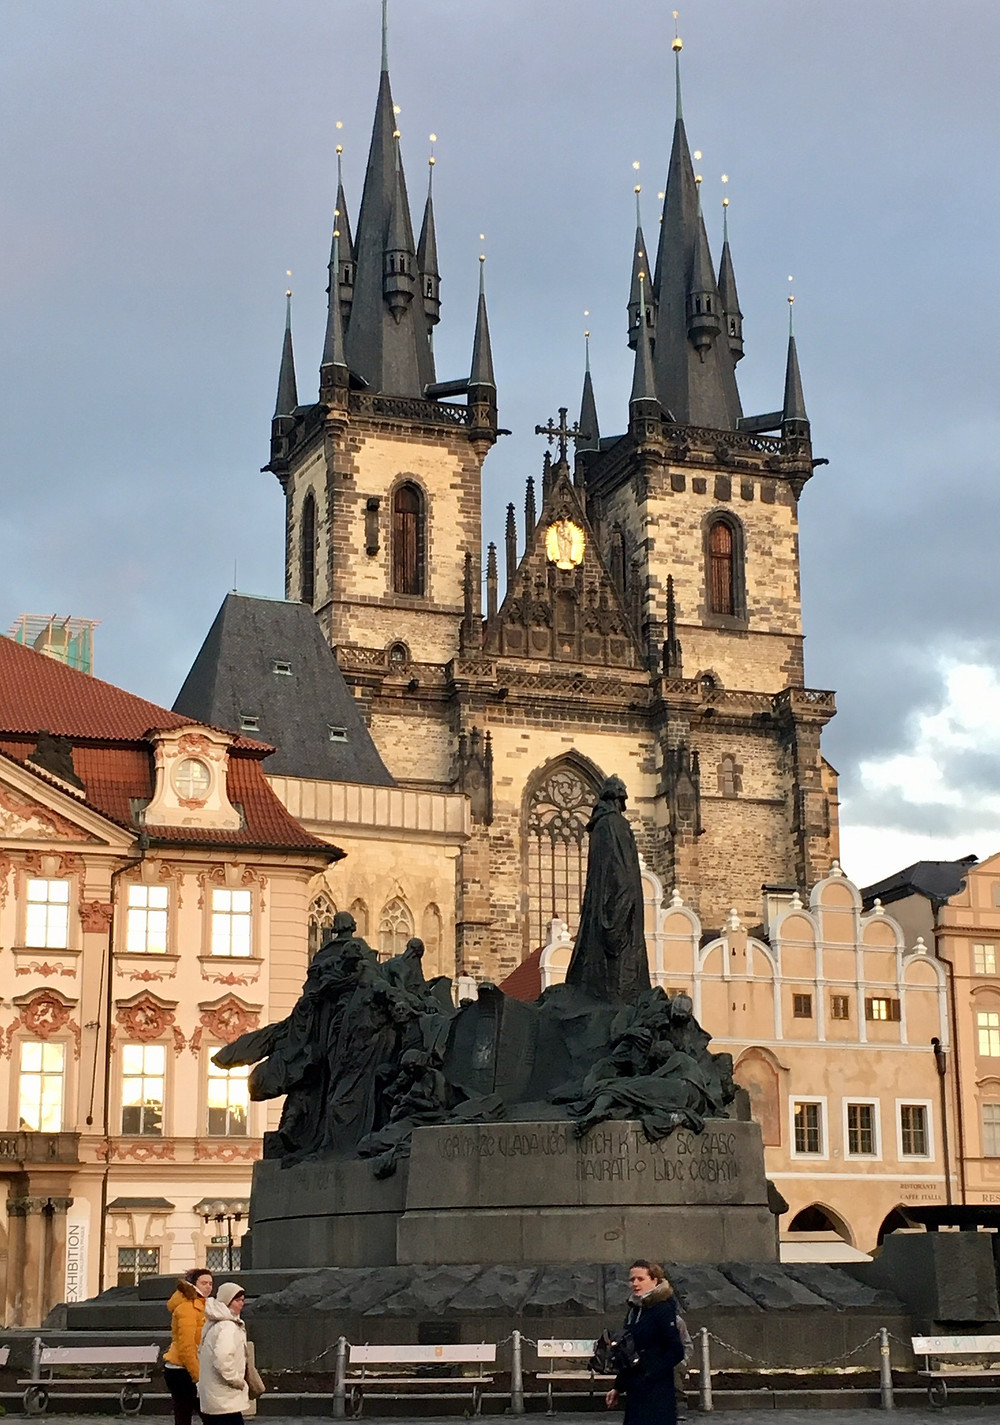 Tyn Church (where Tycho Brahe is buried); Old Town Square, with Hus statue